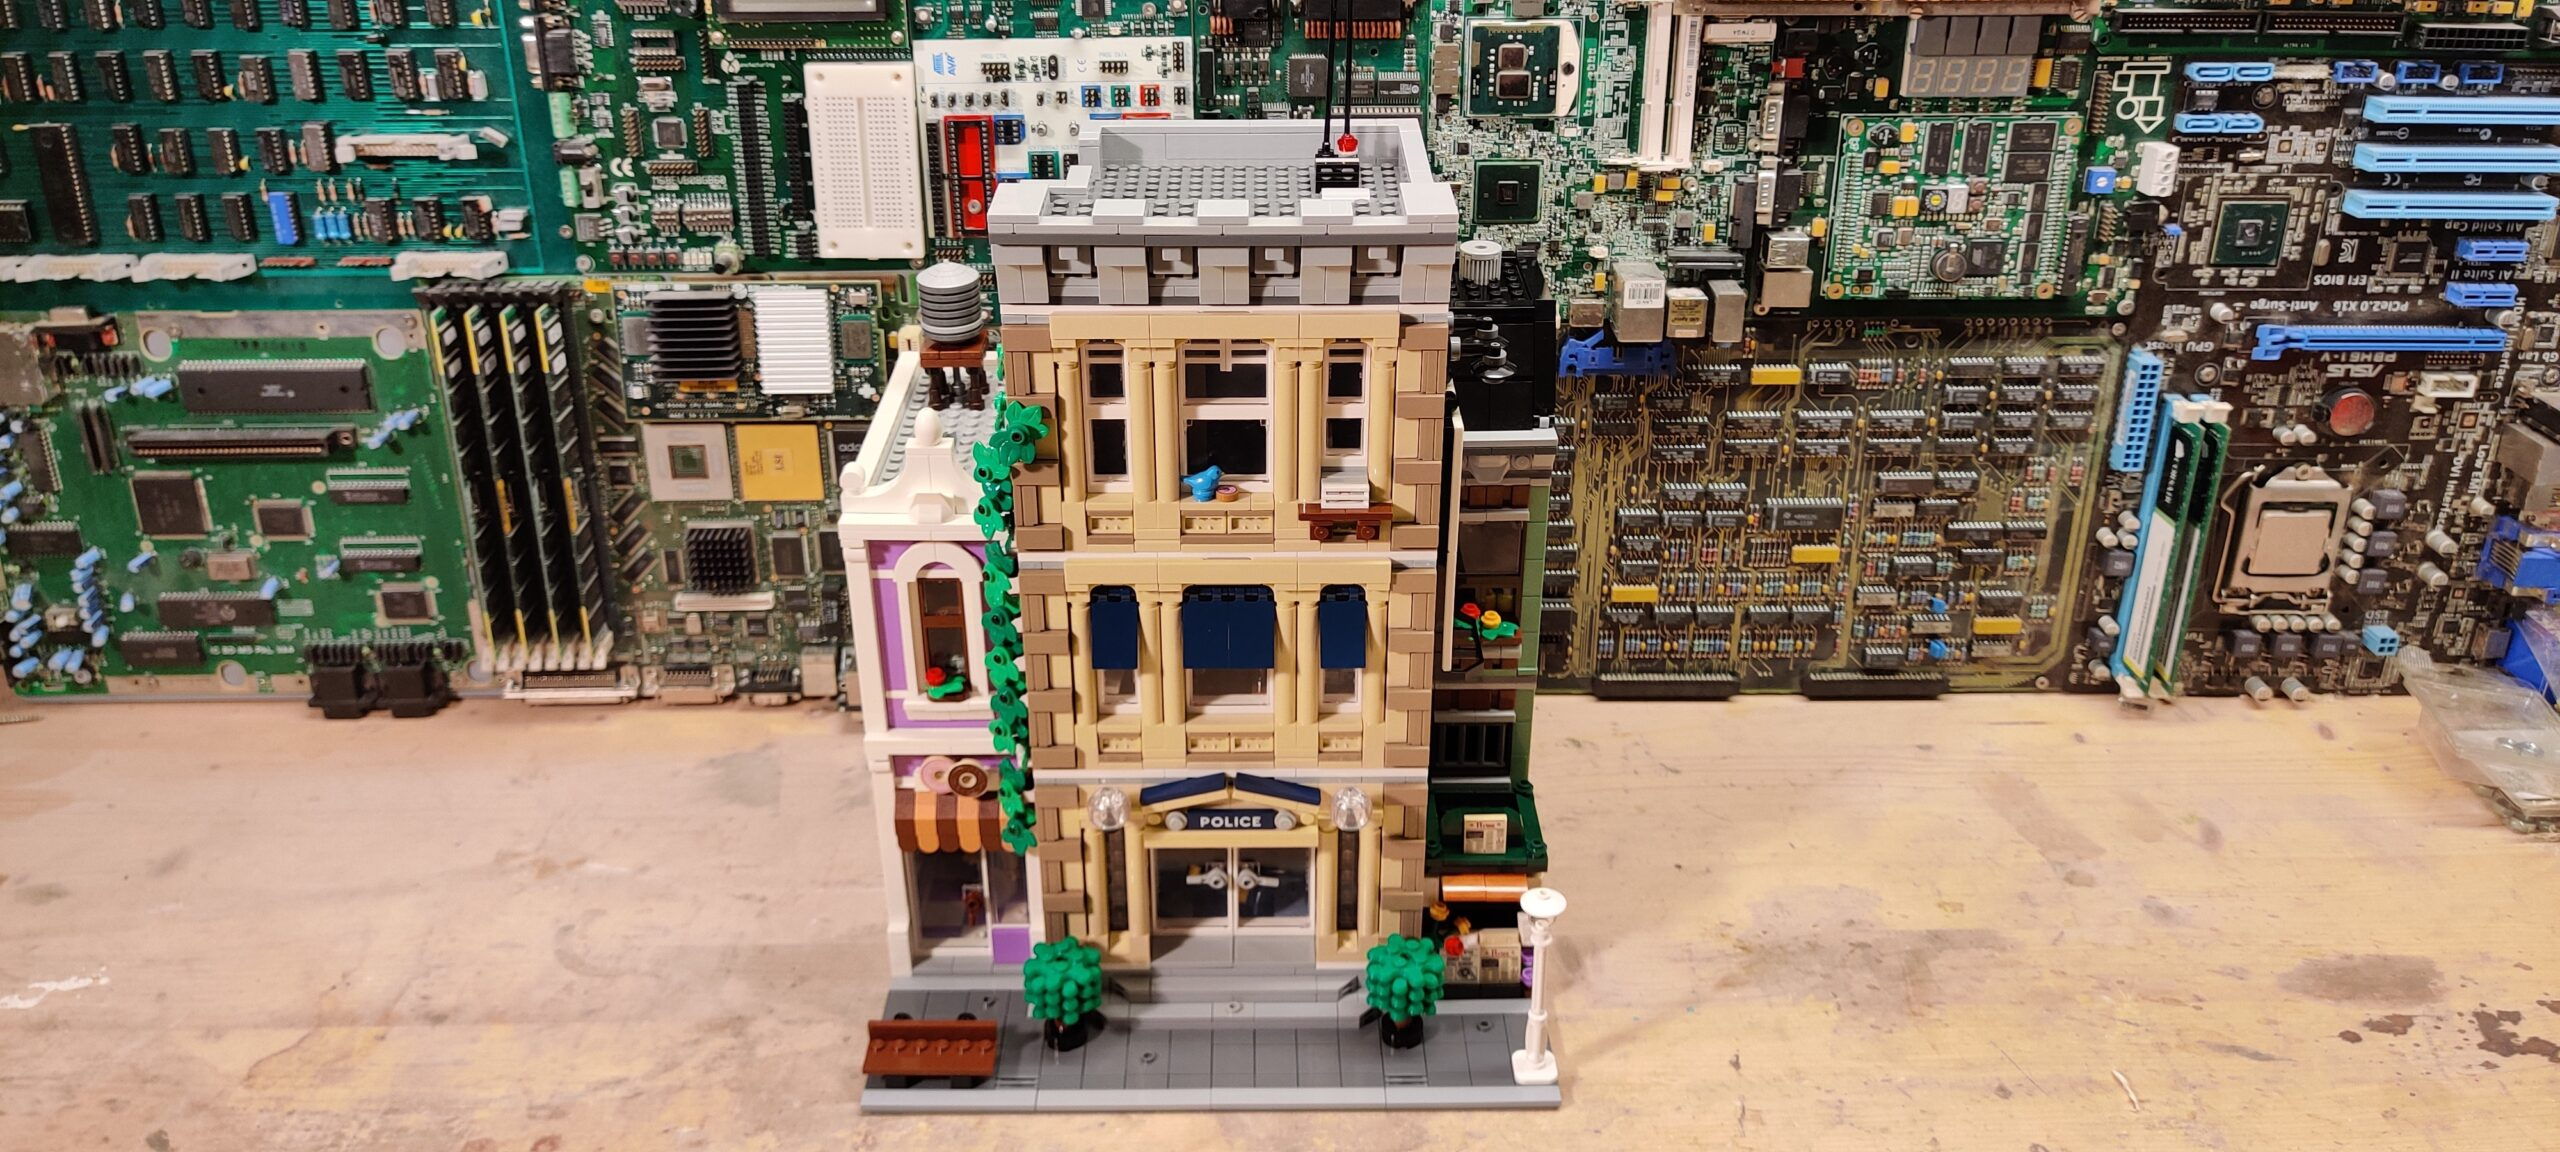 Review: LEGO 10278 Police Station